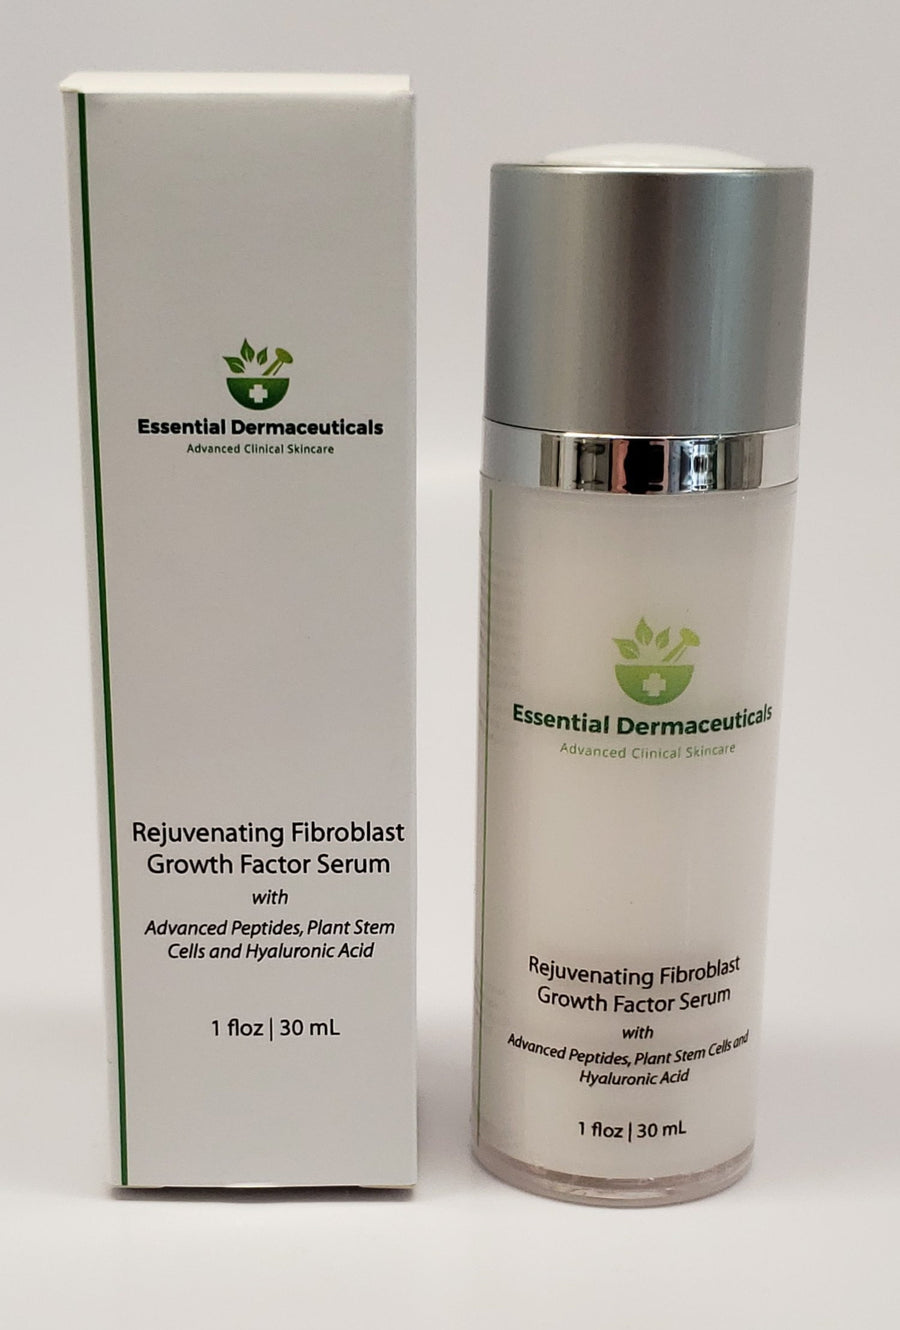 Facial Skincare Services - shop-anikabeauty-com - Rejuvenating Fibroblast Growth Factor Serum Essential Dermaceuticals Face